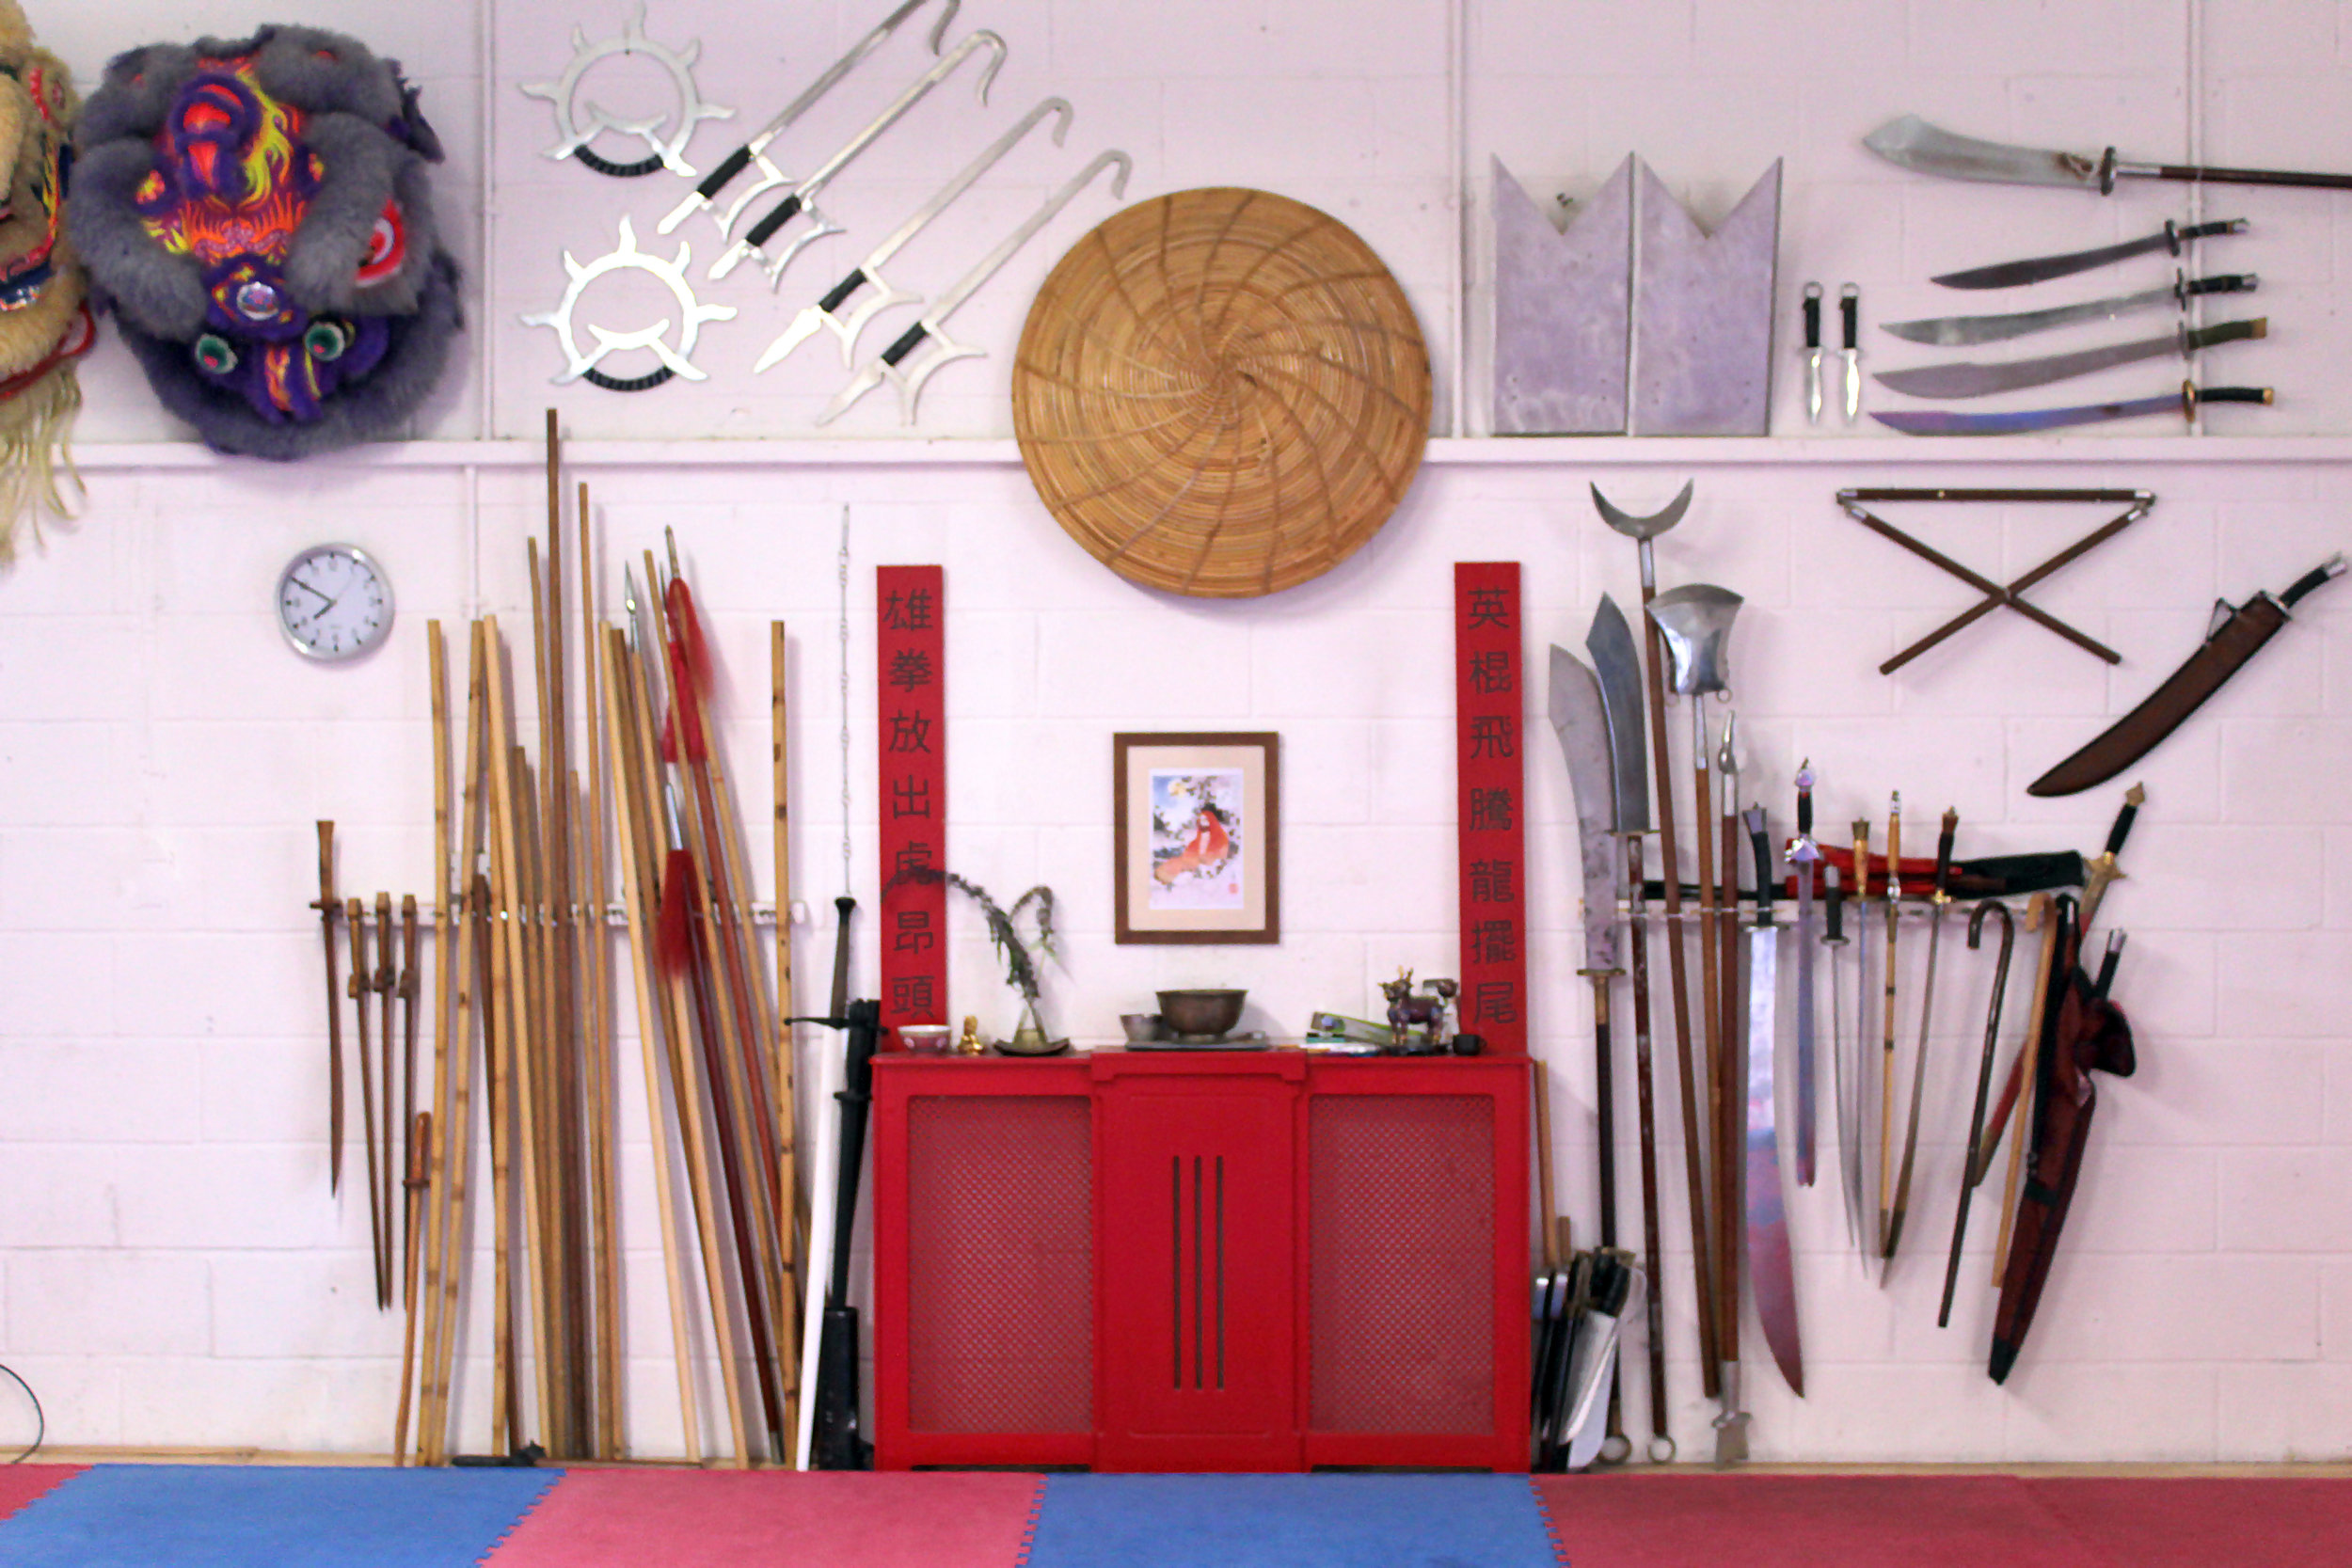 Some of our weapons in the Norwich Kung Fu studio.